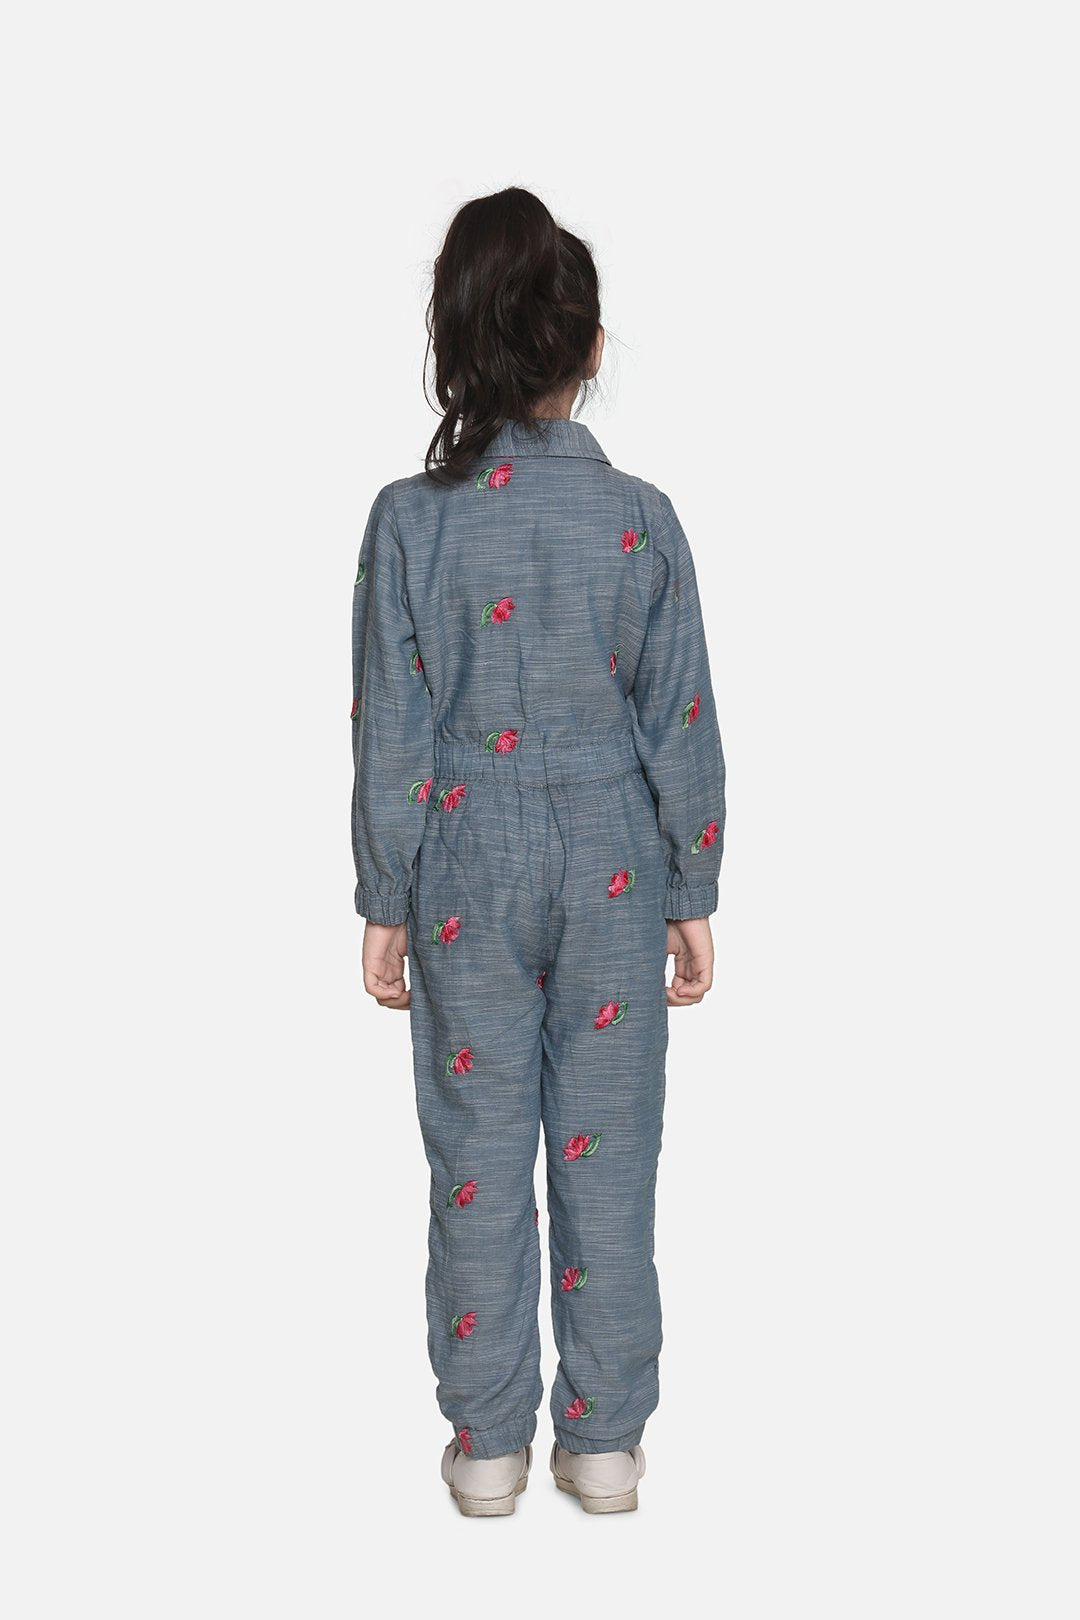 Fairies Forever Embroidered Front Flap Jumpsuit-Chambray